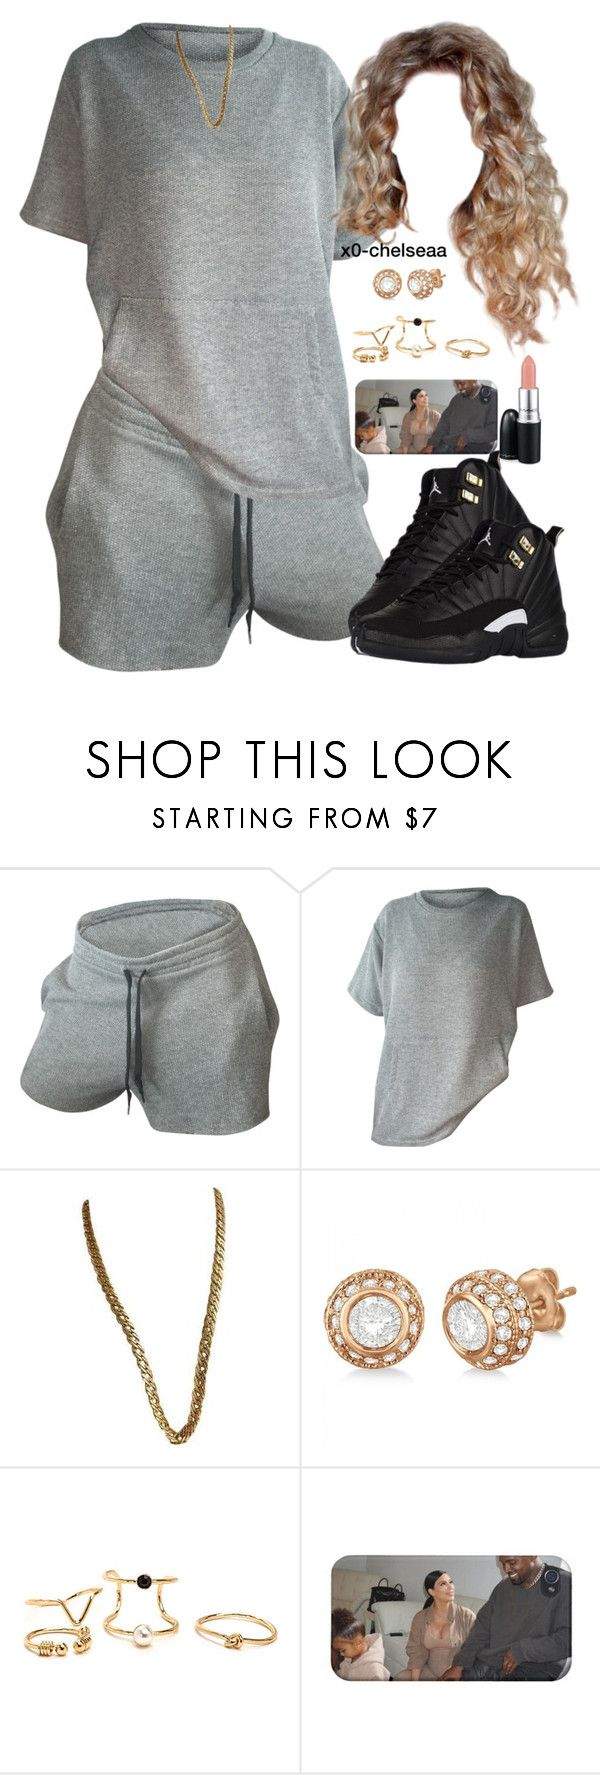 """""""07 03 16"""" by x0-chelseaa ❤ liked on Polyvore featuring Allurez and MAC Cosmetics"""